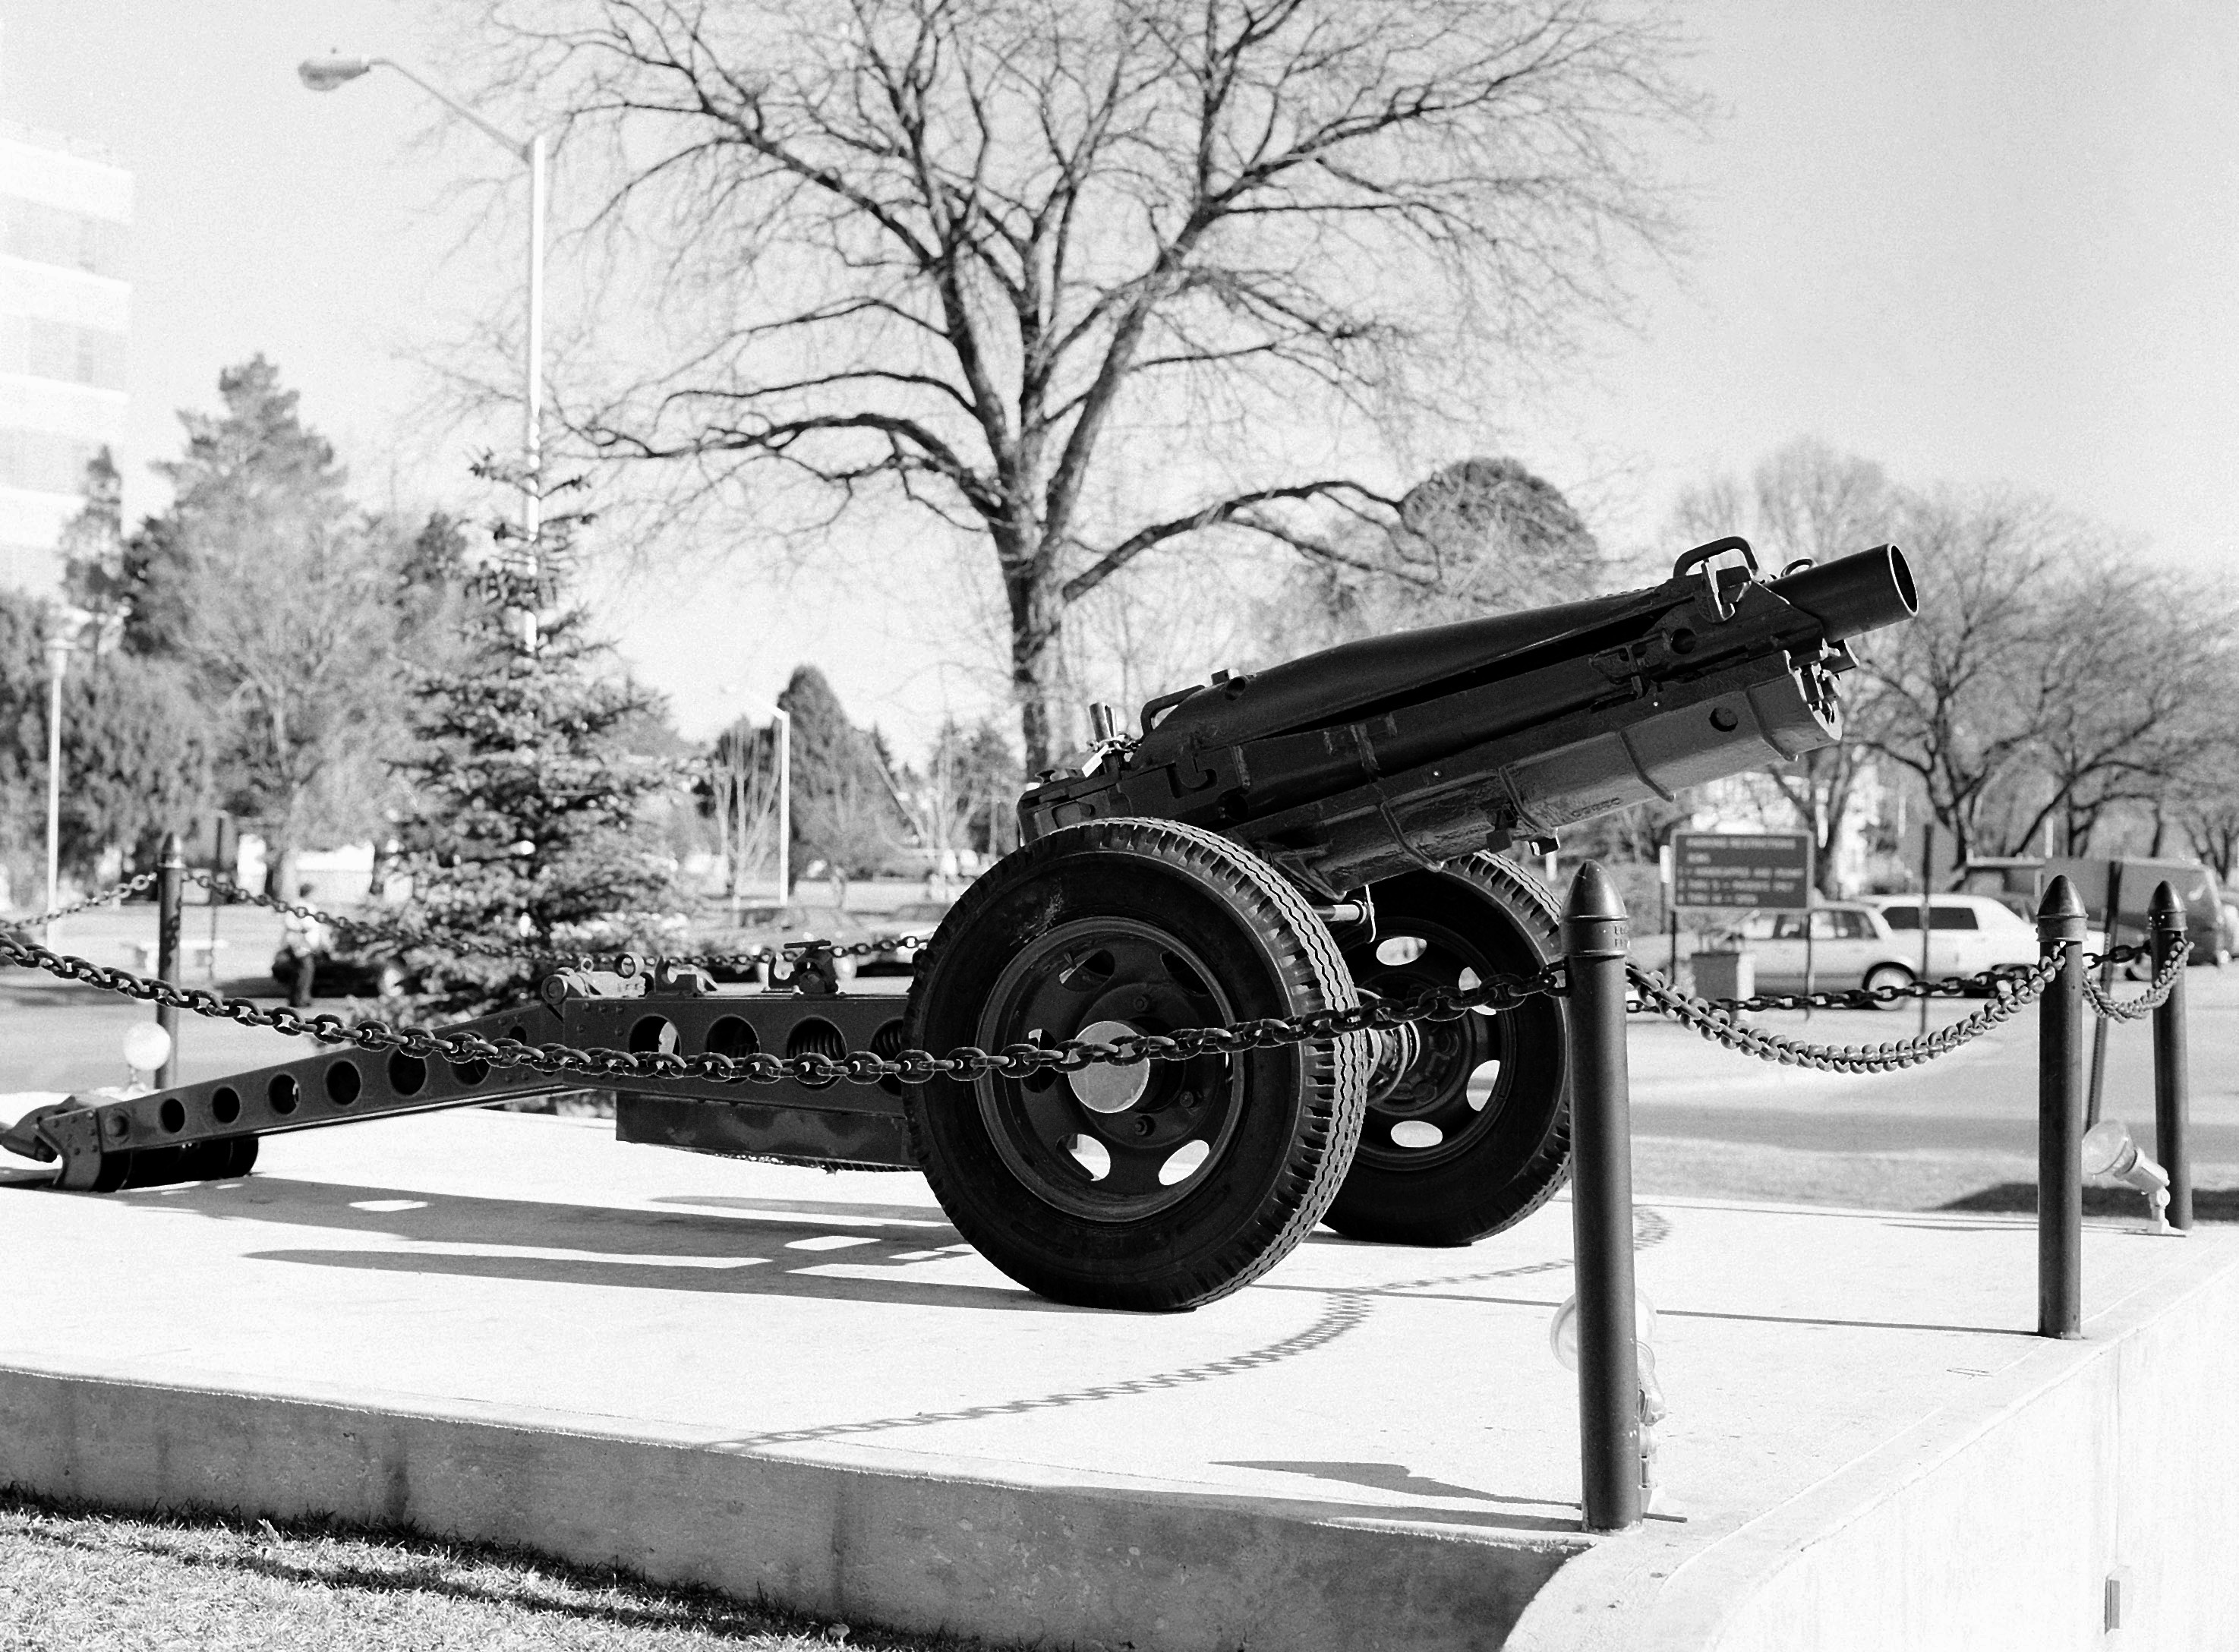 What is a howitzer 68